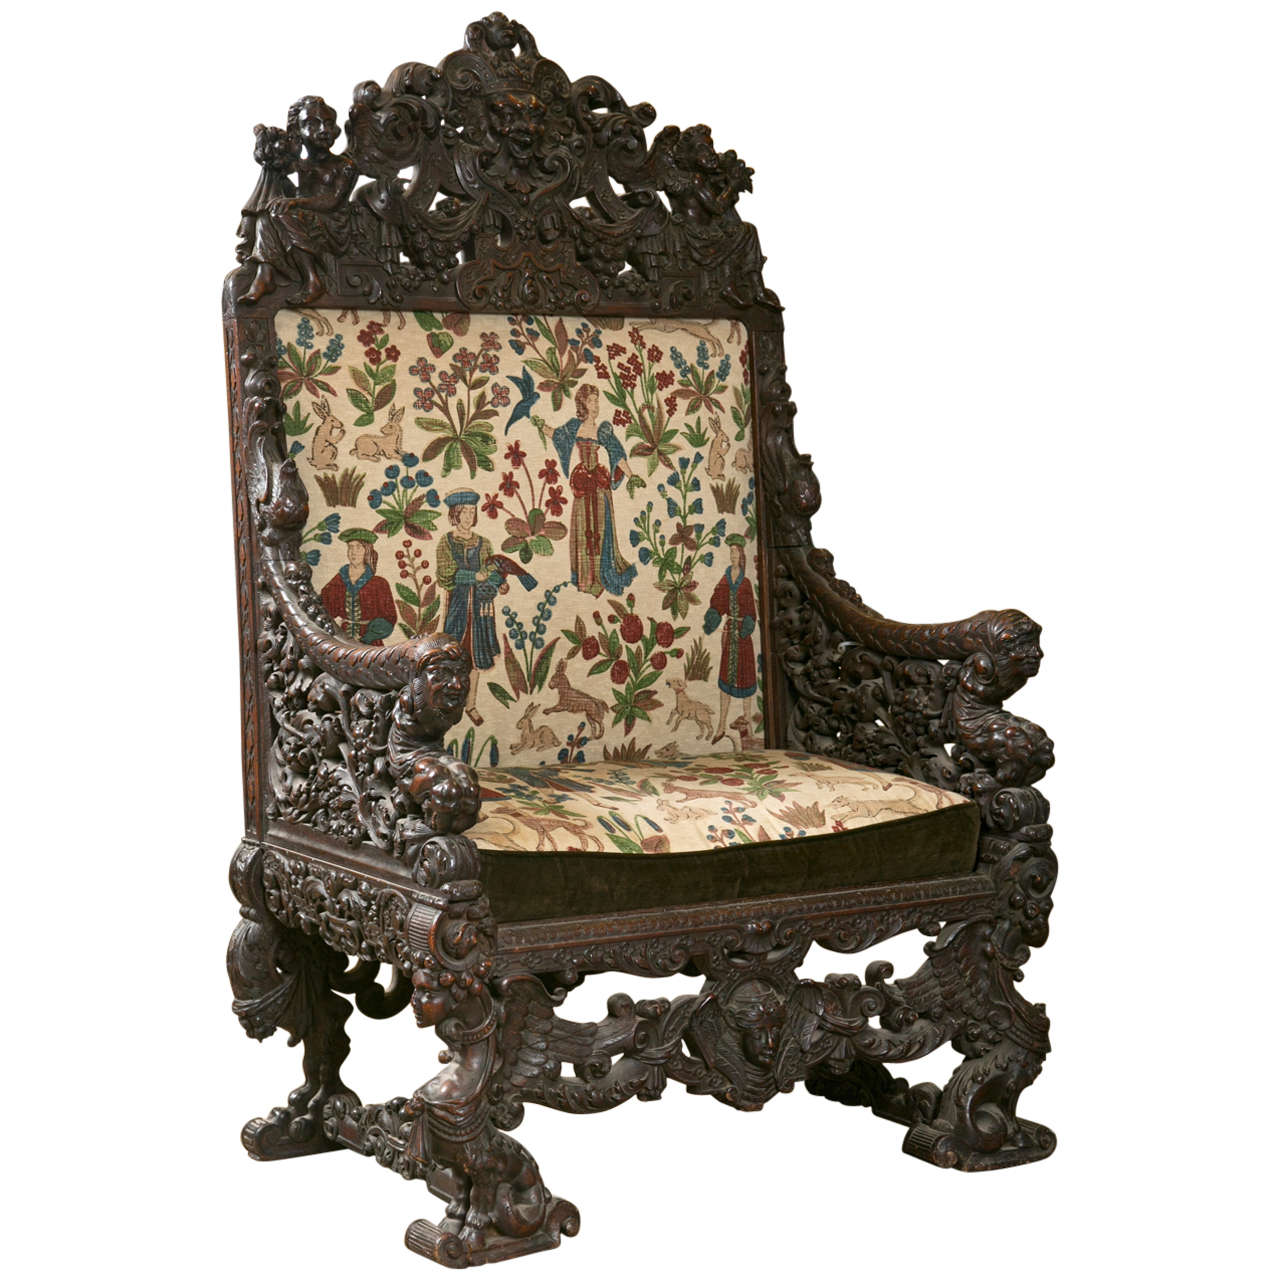 Antique Oversized Carved Medieval Throne Chair For Sale - Antique Oversized Carved Medieval Throne Chair At 1stdibs